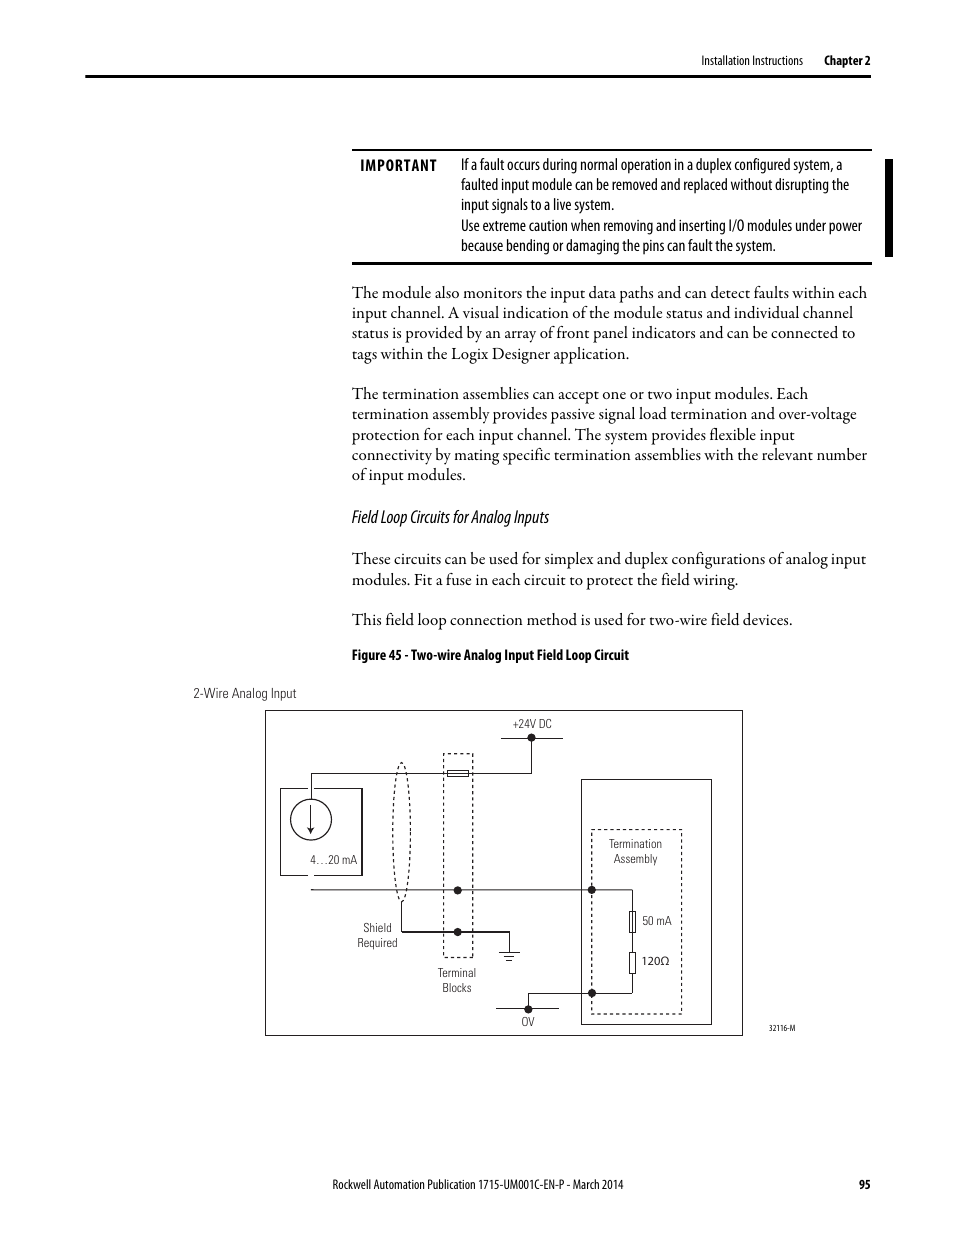 Rockwell Automation 1715-OF8I Redundant I/O System User Manual User Manual | Page 95 / 324 | Also for: 1715-IF16 Redundant I/O System User Manual, ...